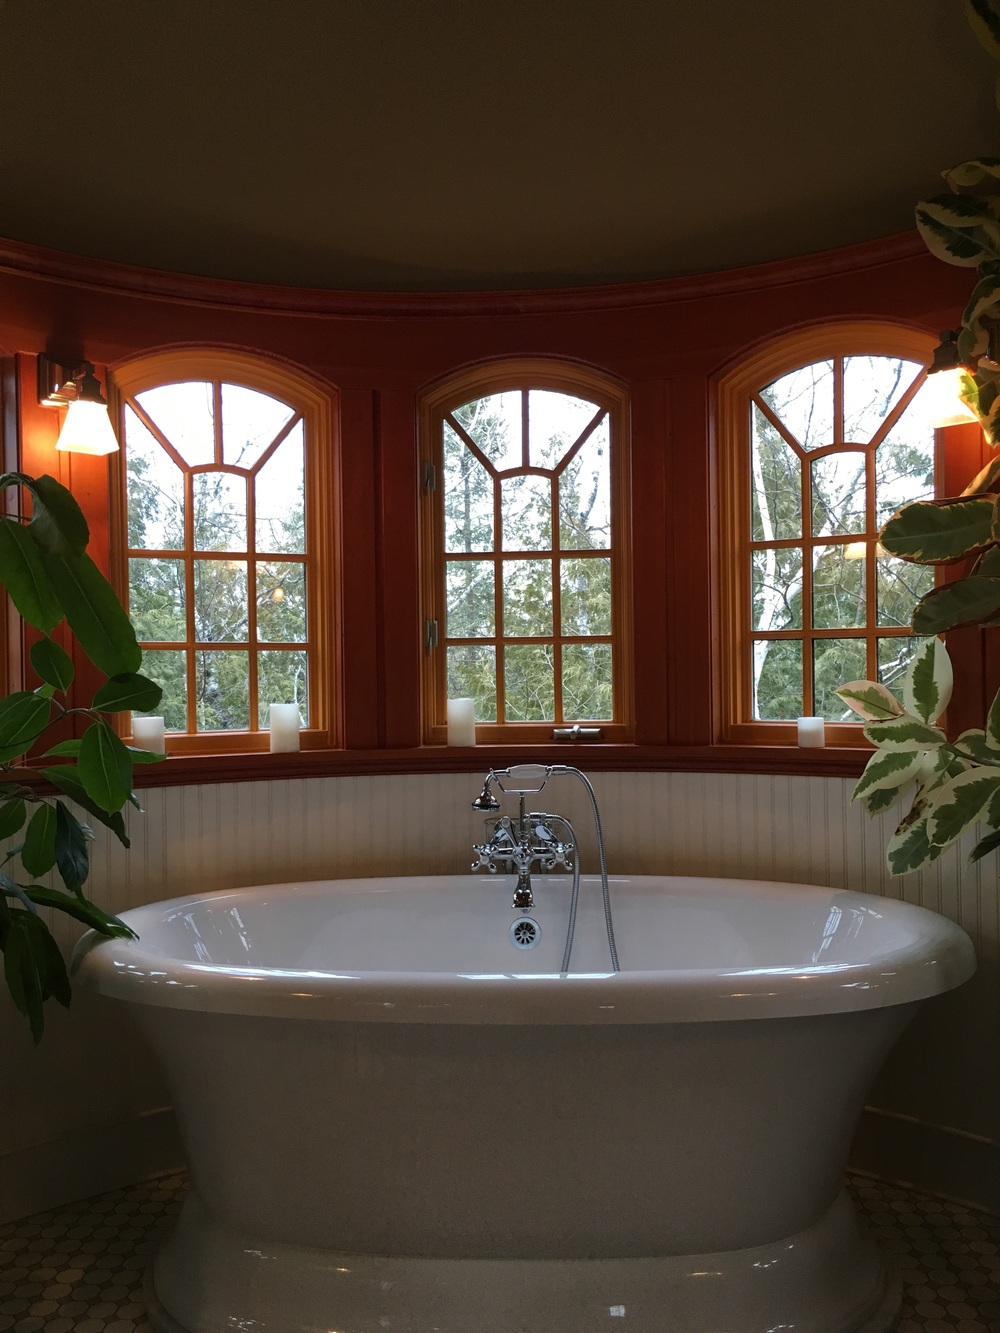 iPhone shot - i couldn't resist taking a shot of this dream tub!